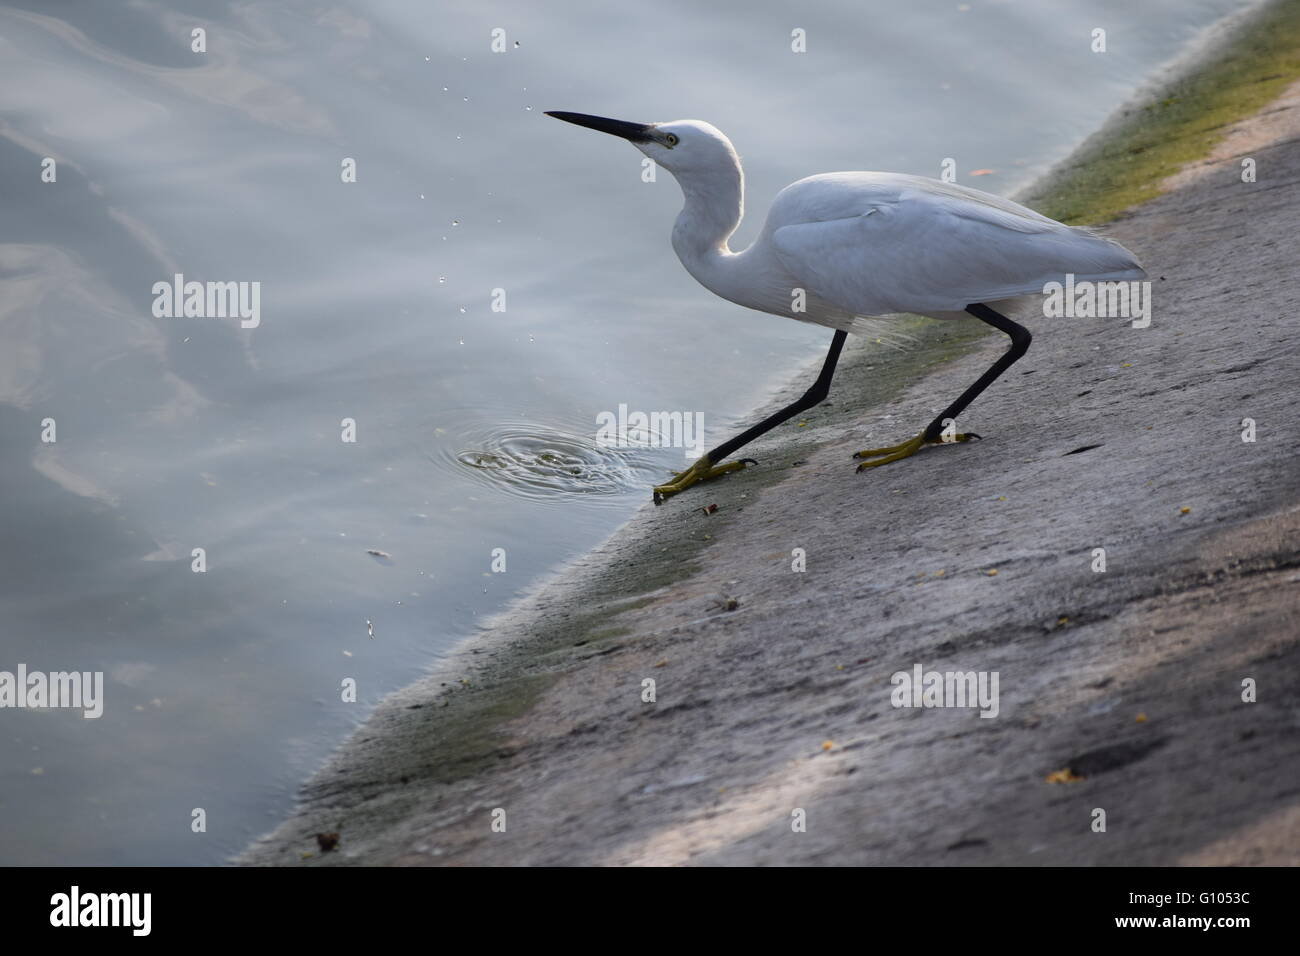 bird patiently waiting on the edge of the river , - Stock Image